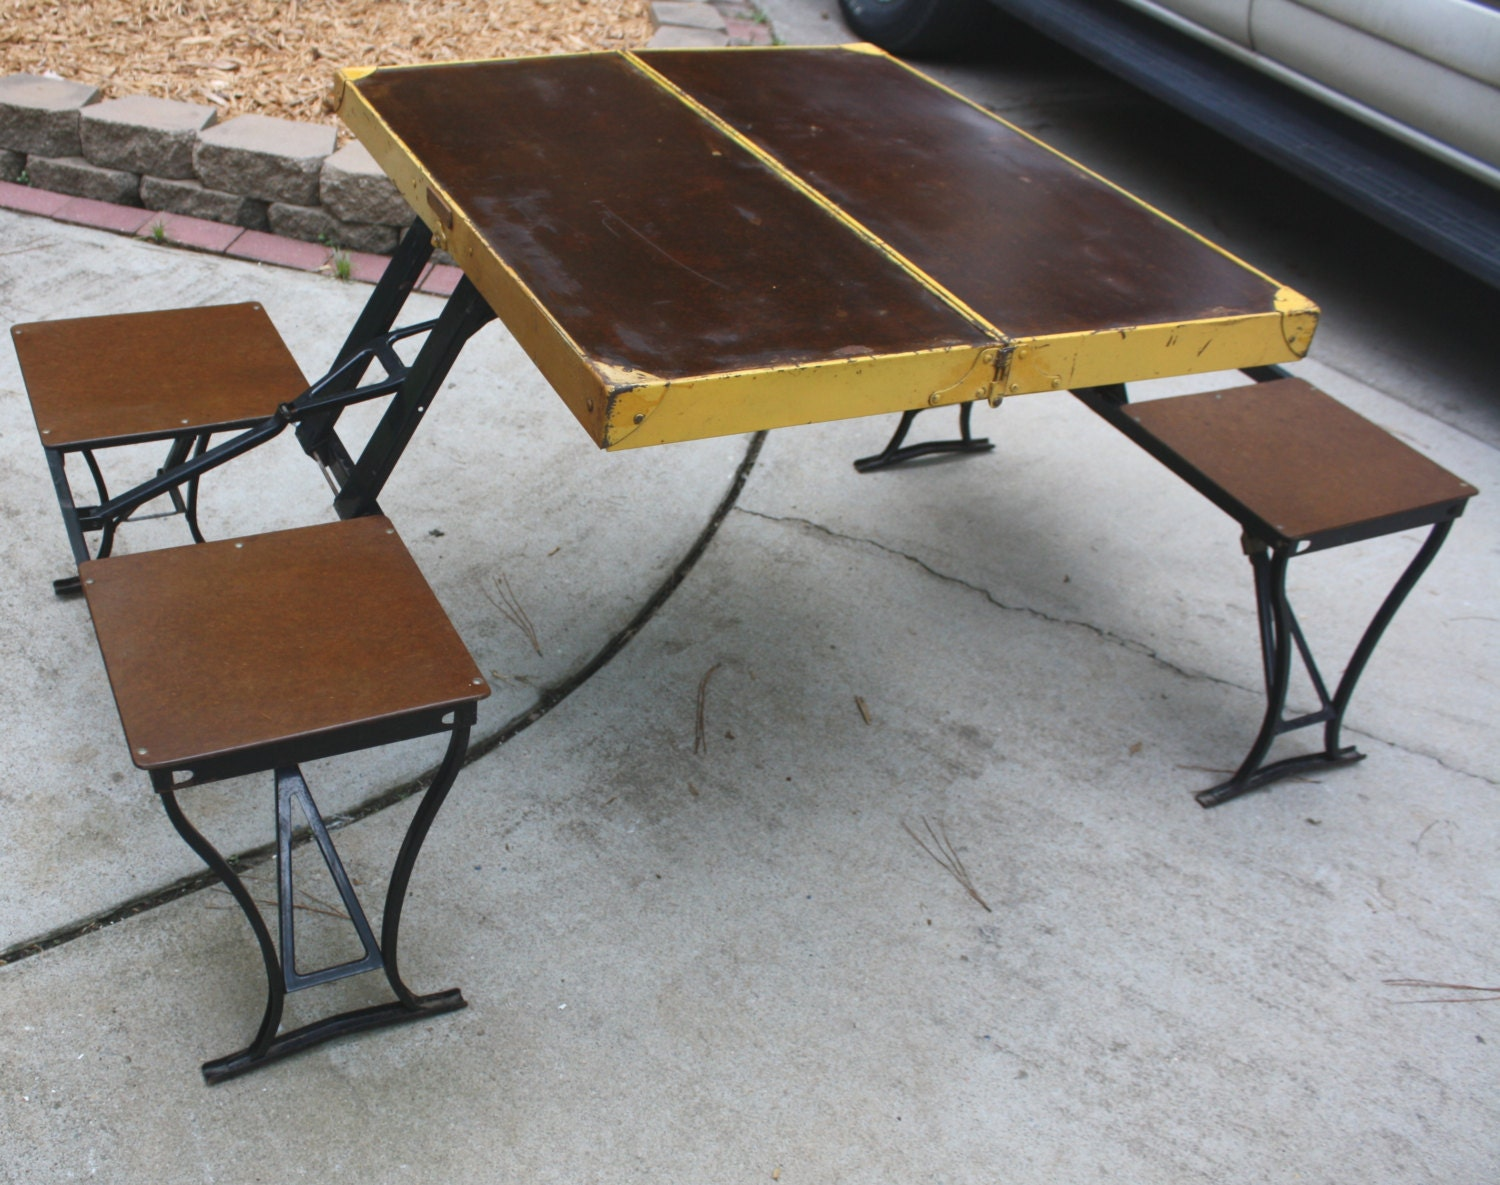 1947 Vintage Wooden Camper Camping Folding Picnic Table